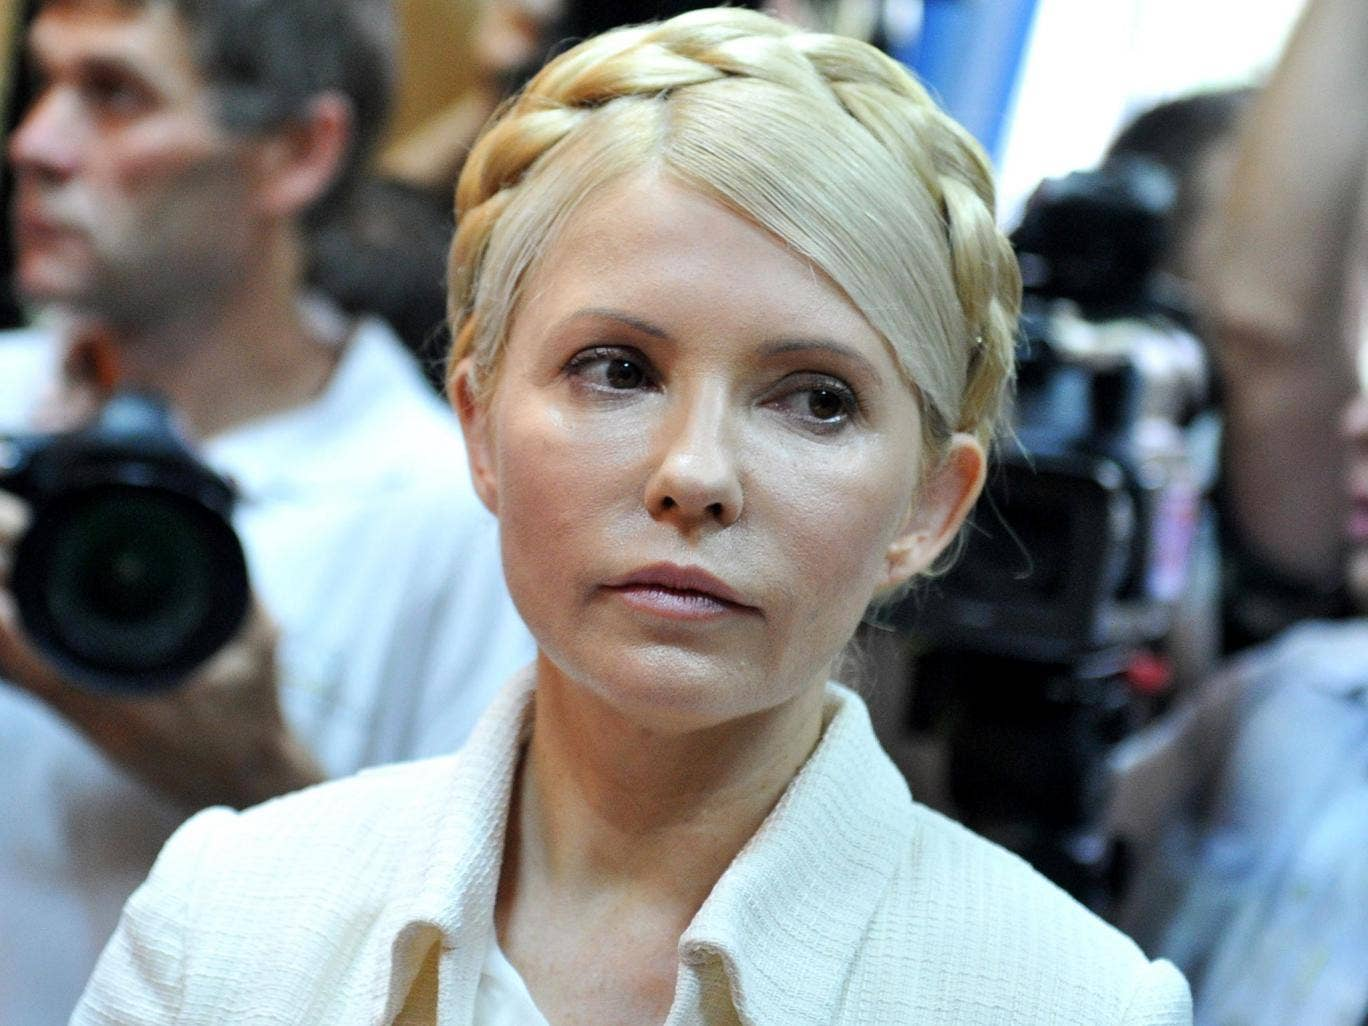 Ukraine's Parliament voted to release former prime minister Yulia Tymoshenko